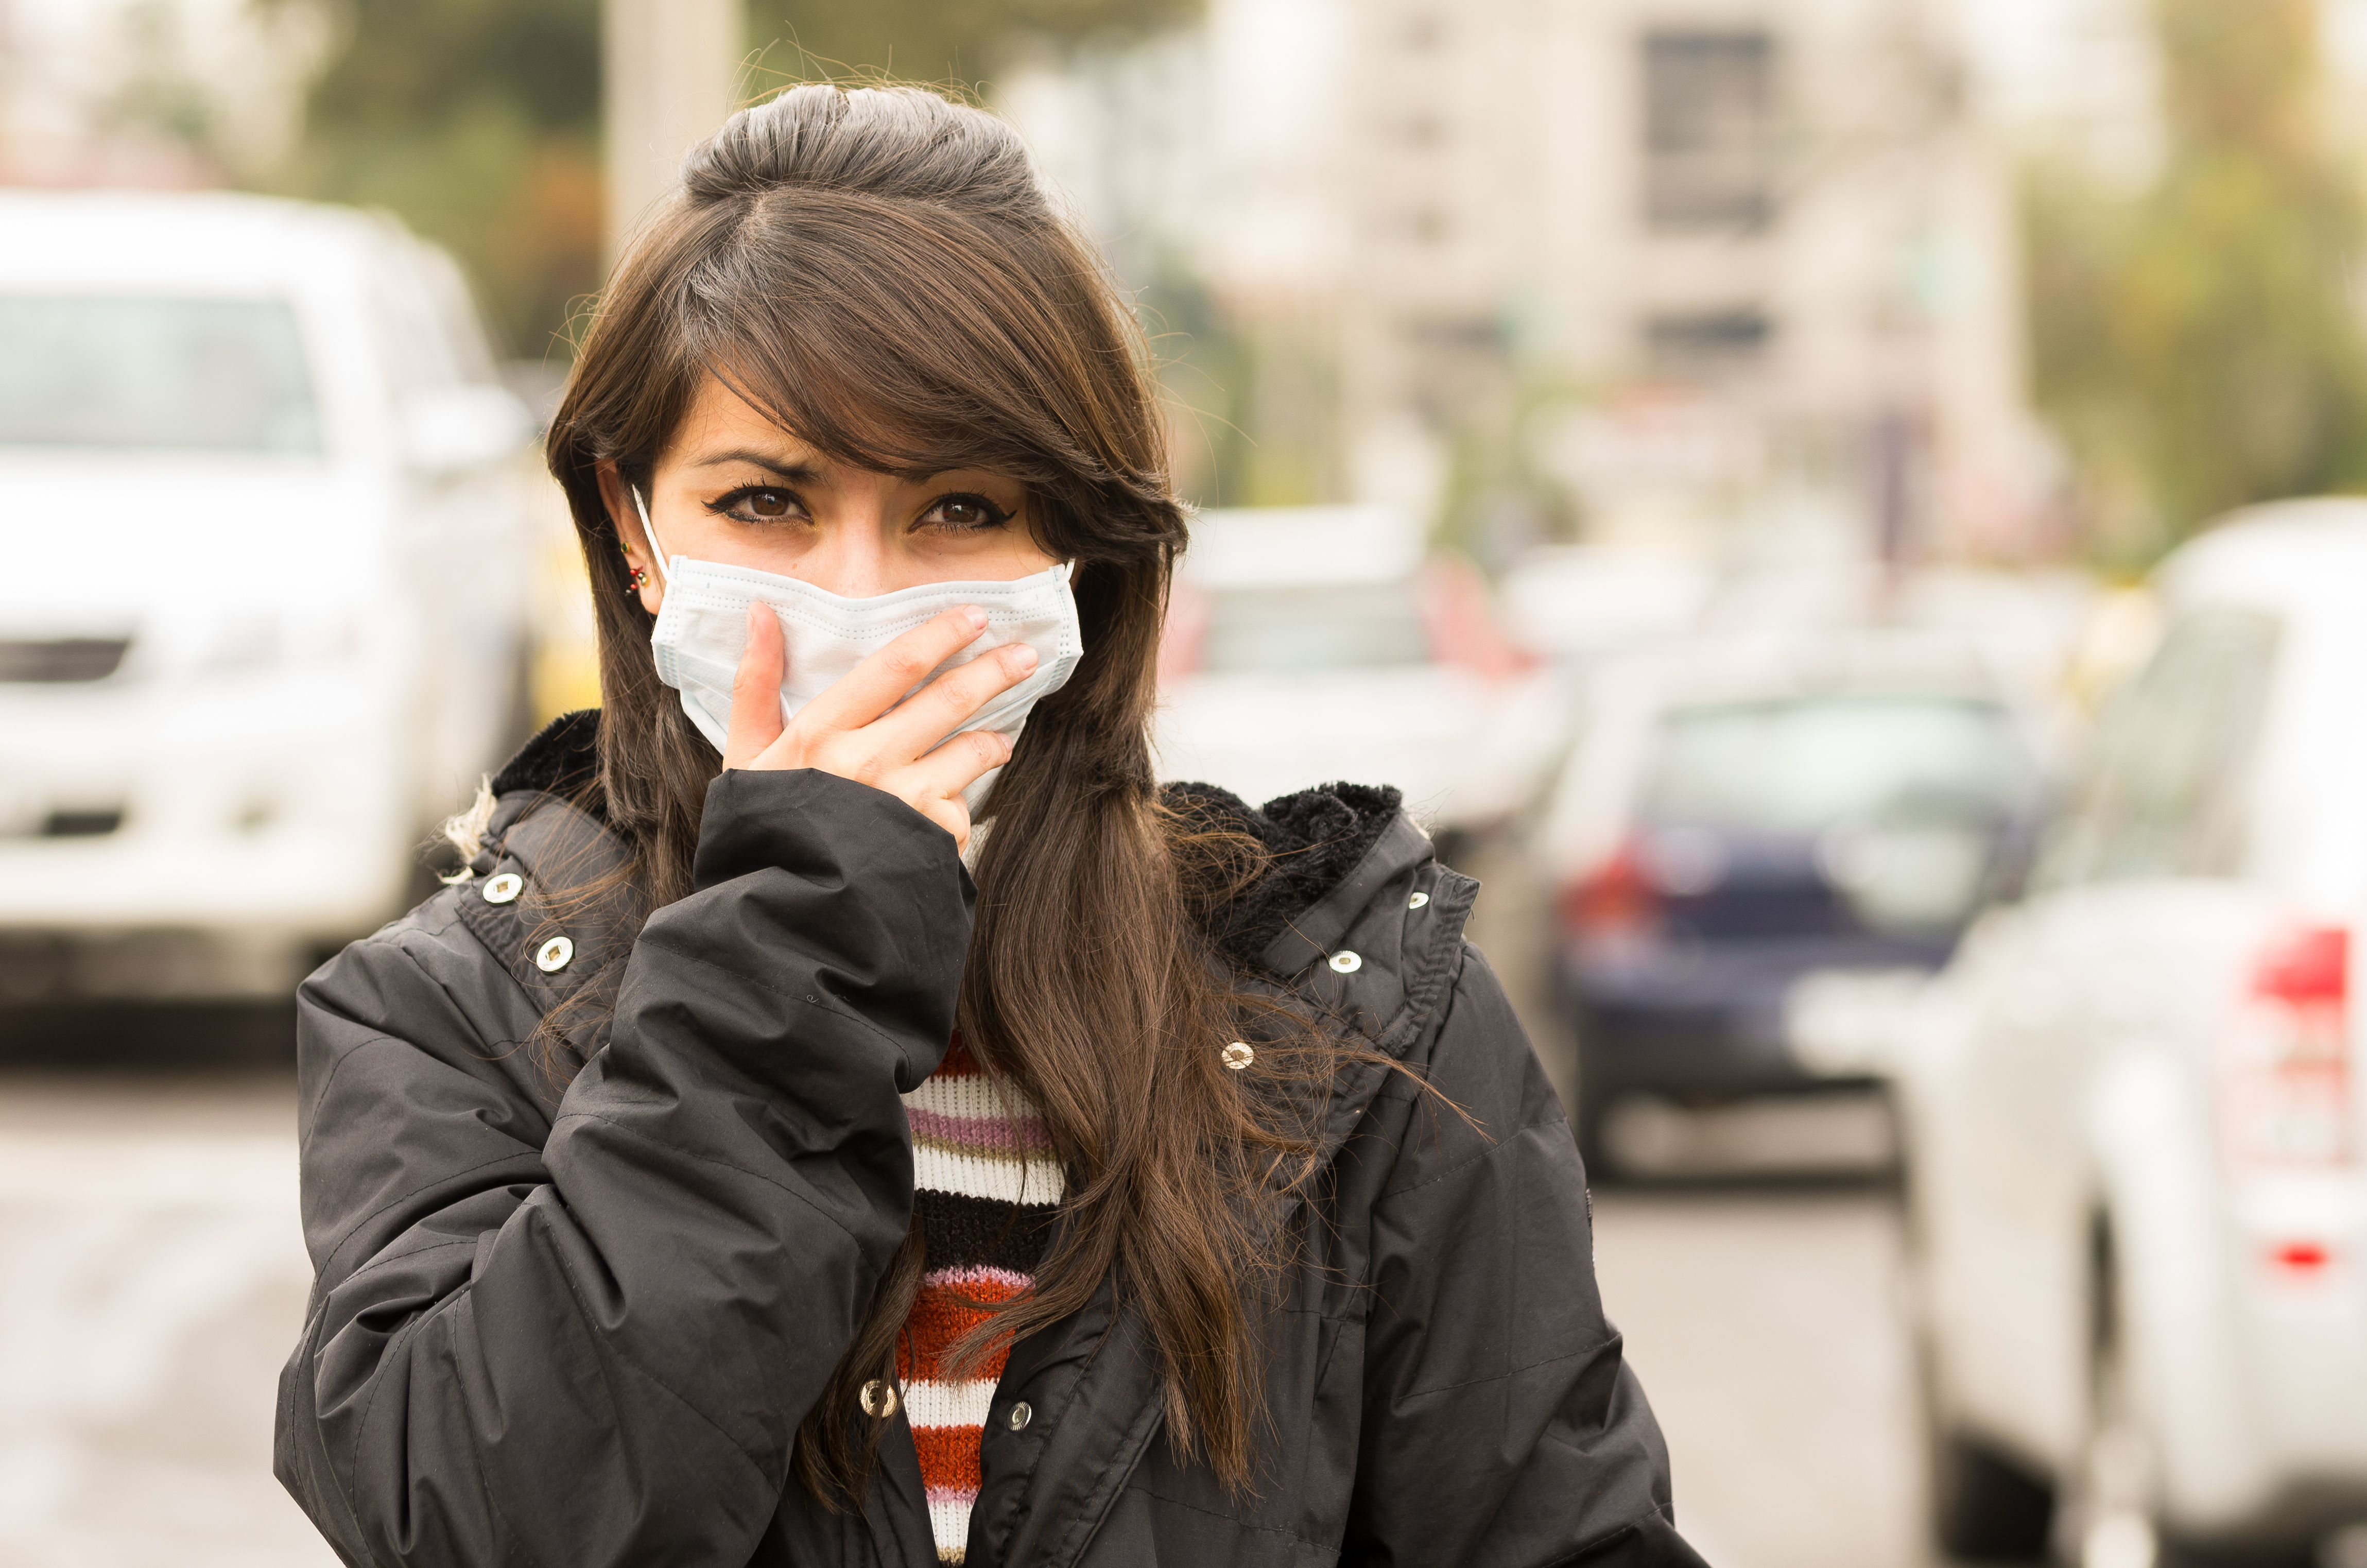 a woman covering her mouth with a breathing mask due to the high level of air pollution